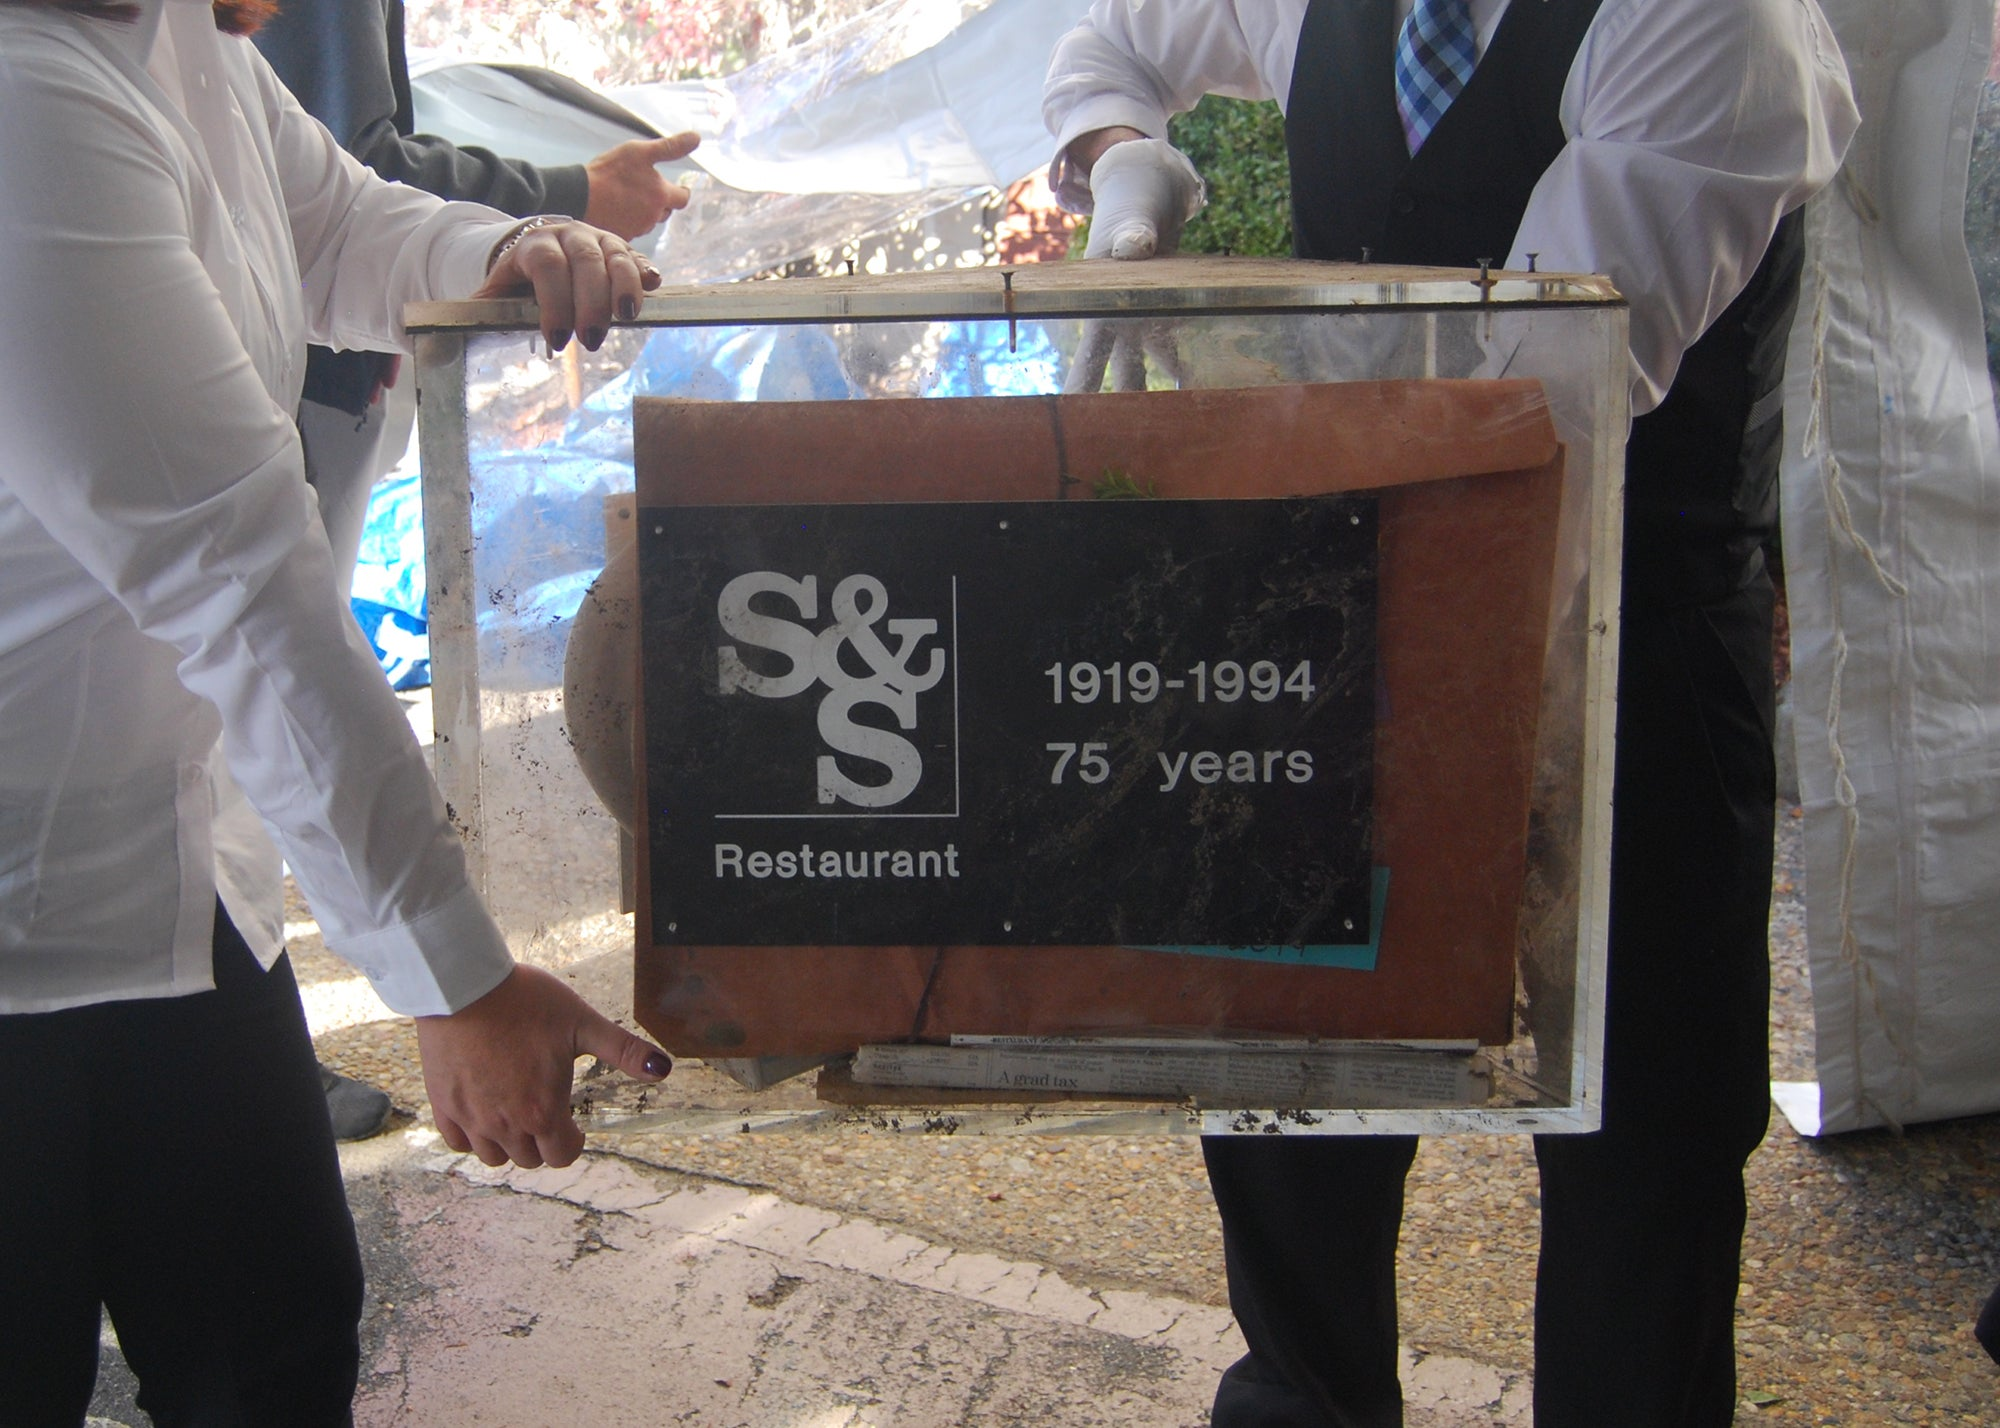 S&S time capsule